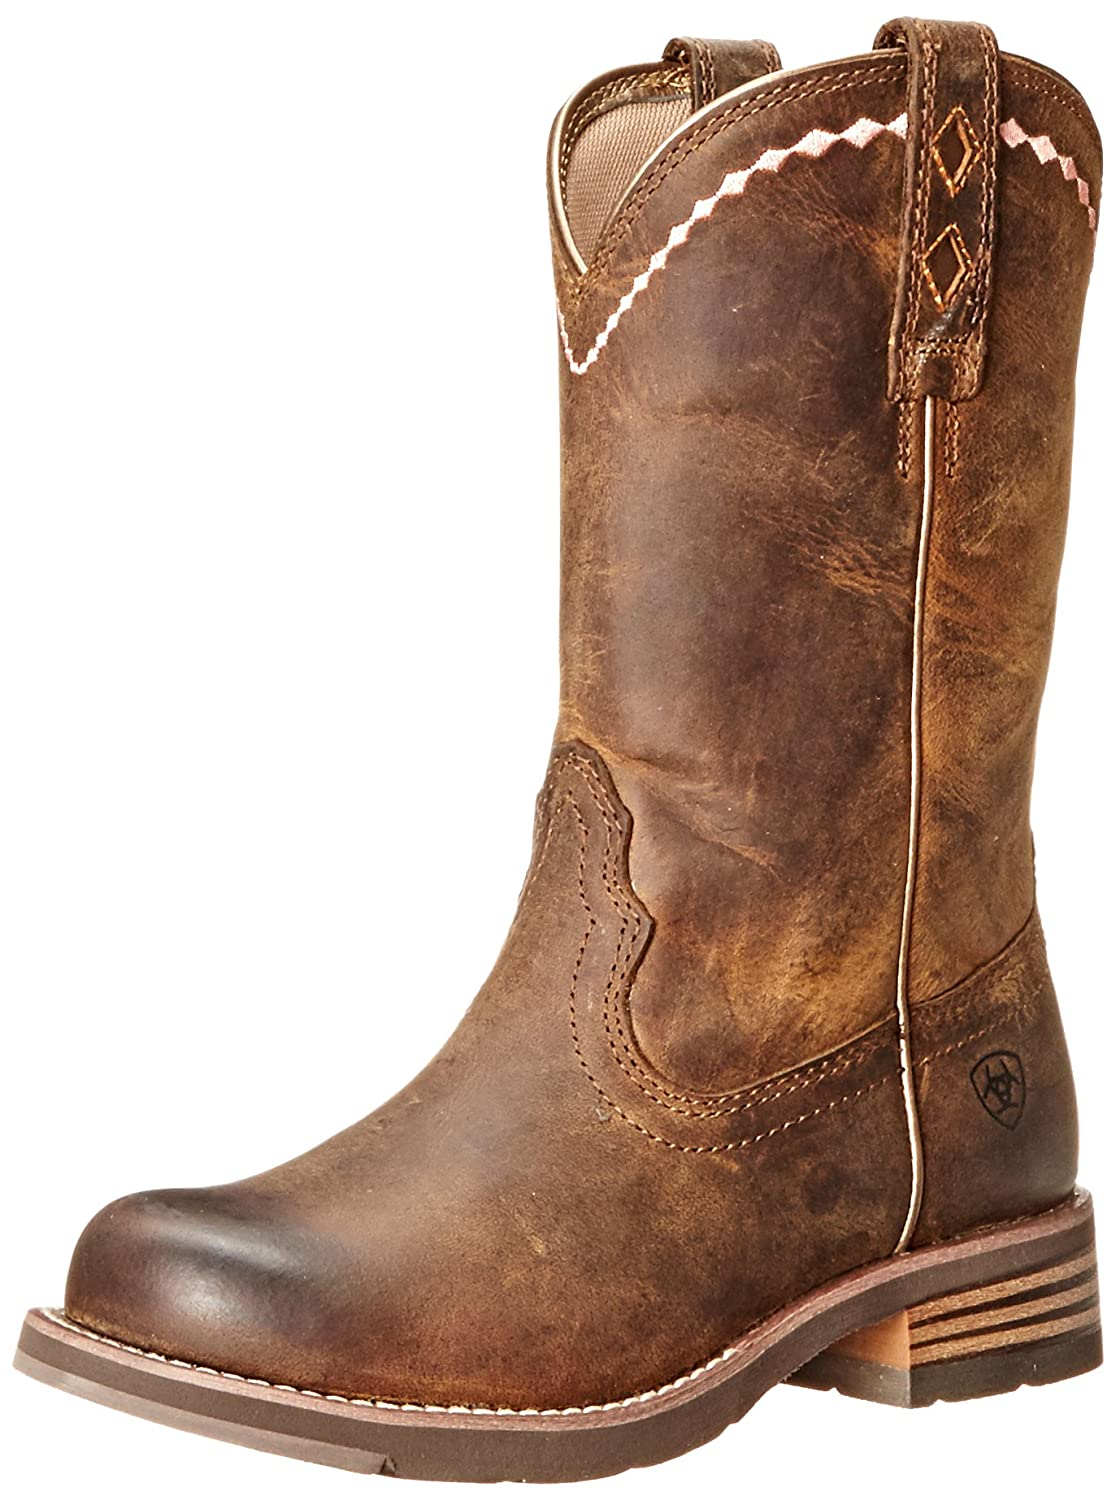 Ariat B00NUIDRB8 Women's Unbridled Roper Western Cowboy Boot B00NUIDRB8 Ariat 10 B(M) US|Distressed Brown 08fe2b